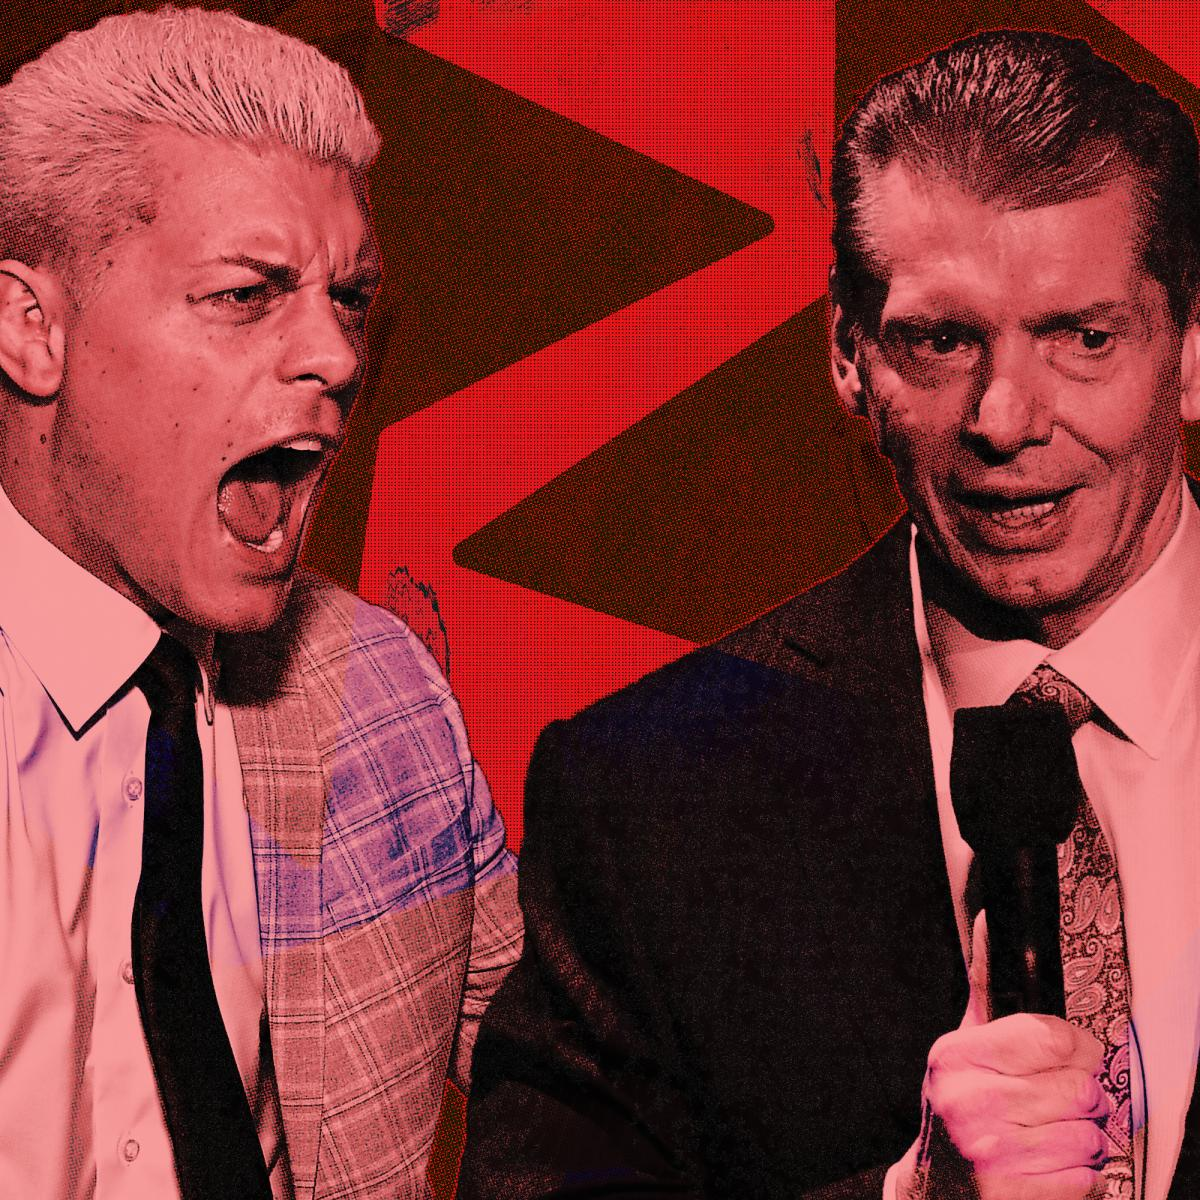 Pro Wrestling's Greatest Blood Feud Reignited in Startup All Elite Wrestling